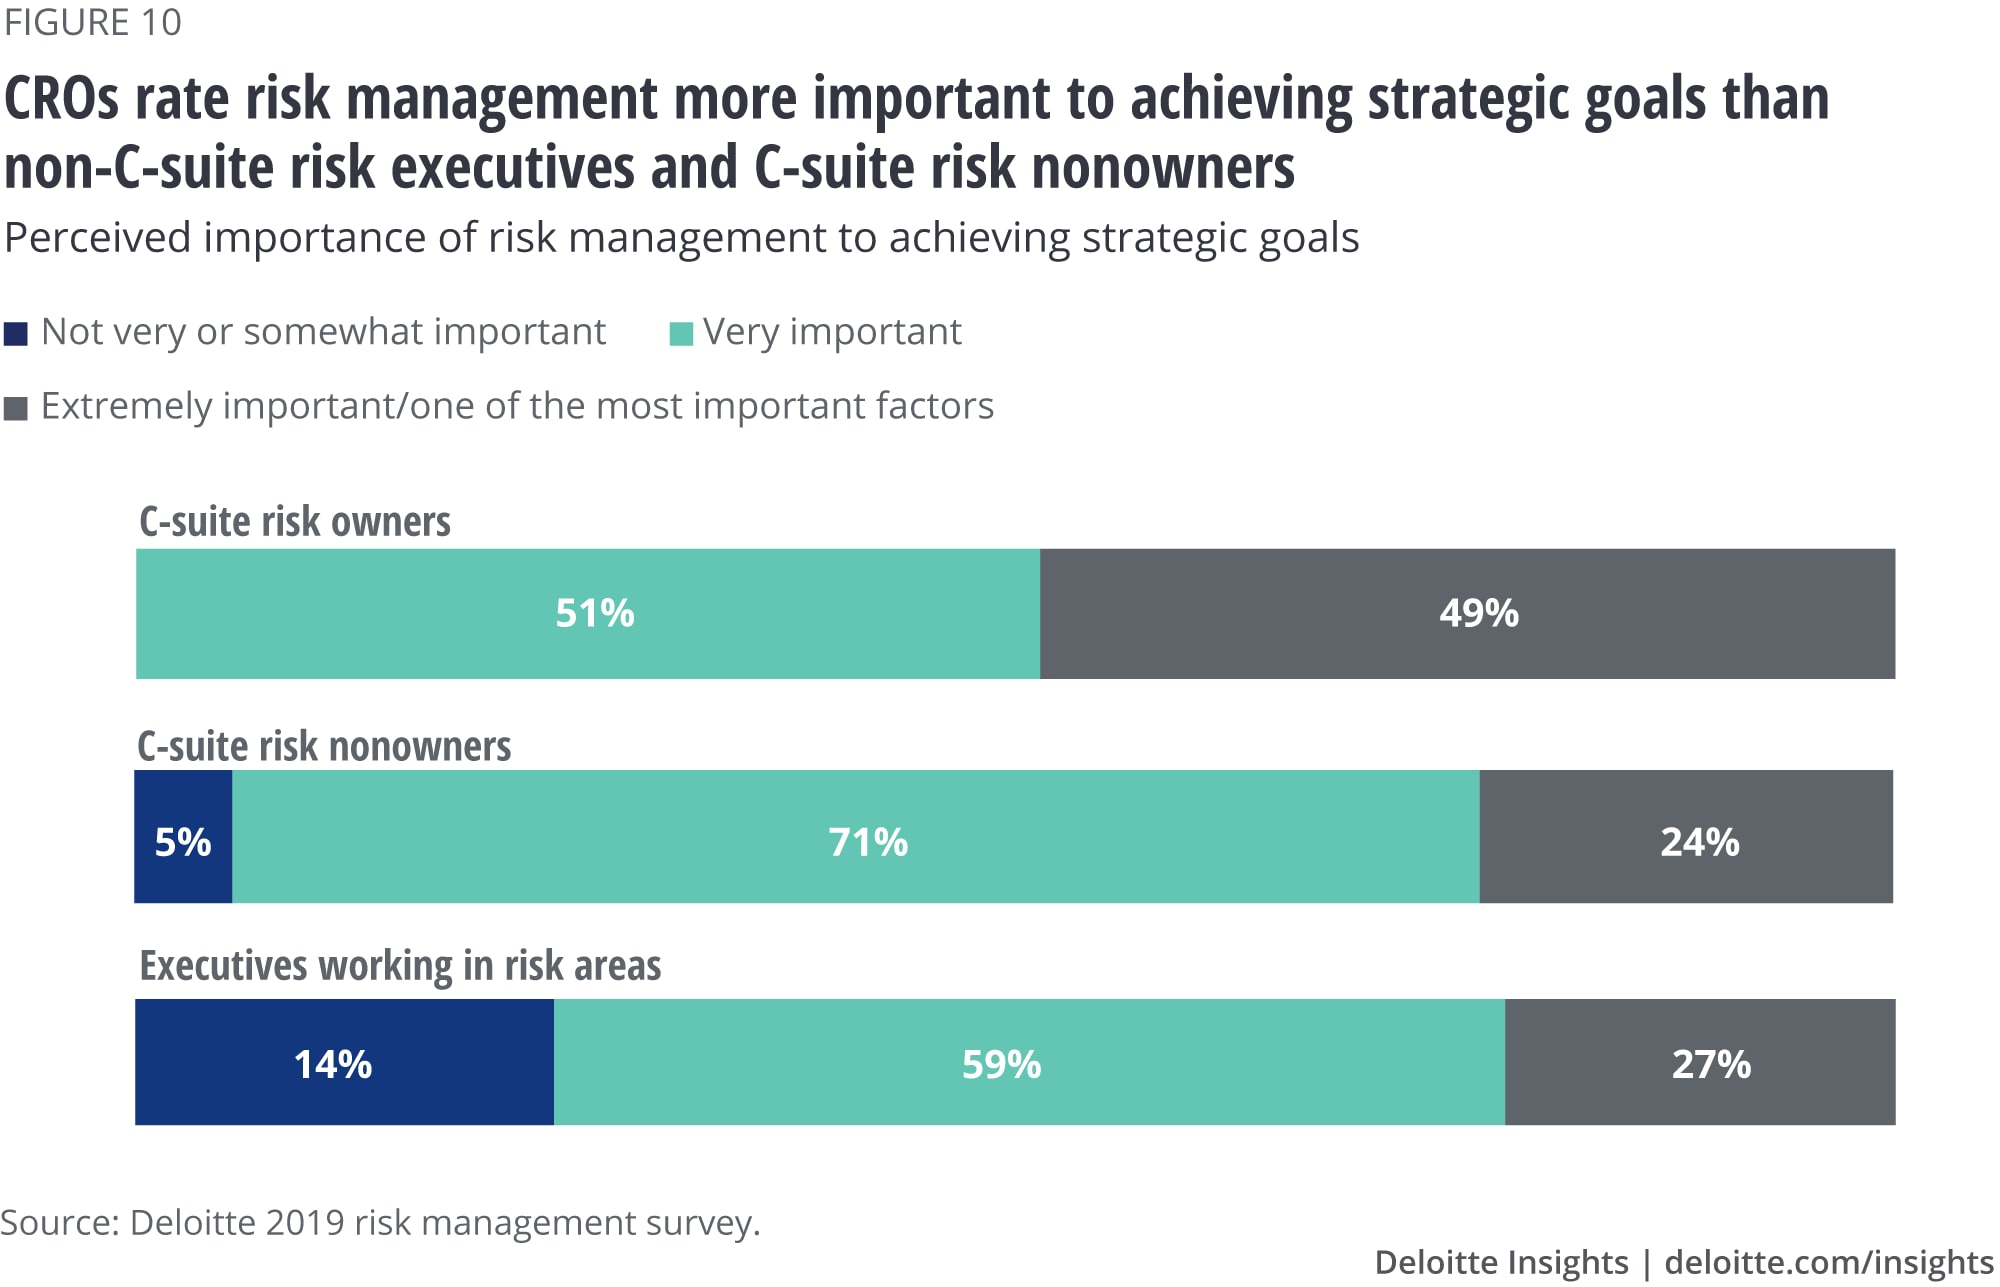 CROs rate risk management more important to achieving strategic goals than non-C-suite risk executives and C-suite risk nonowners